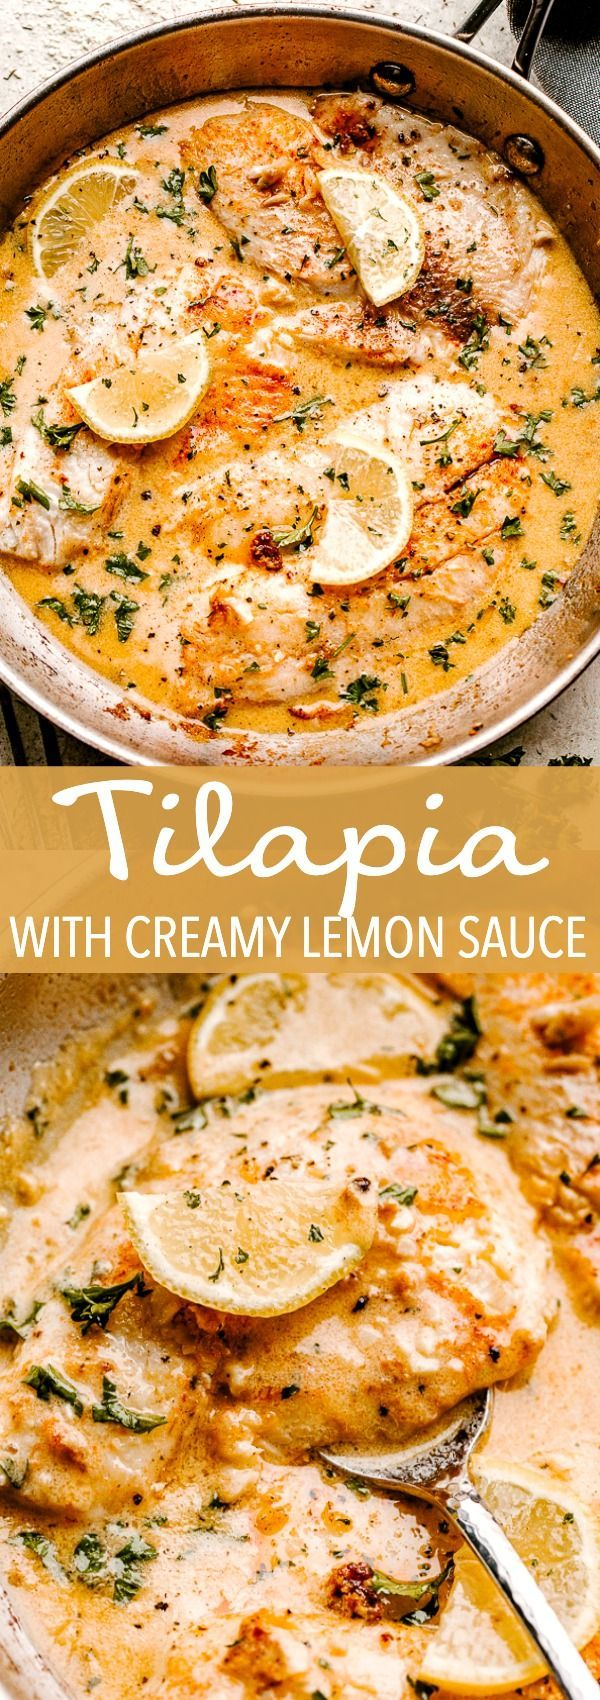 Easy Skillet Tilapia Recipe How To Cook The Best Tilapia Fish In 2020 Fish Recipes Healthy Fish Dinner Recipes Tilapia Recipes